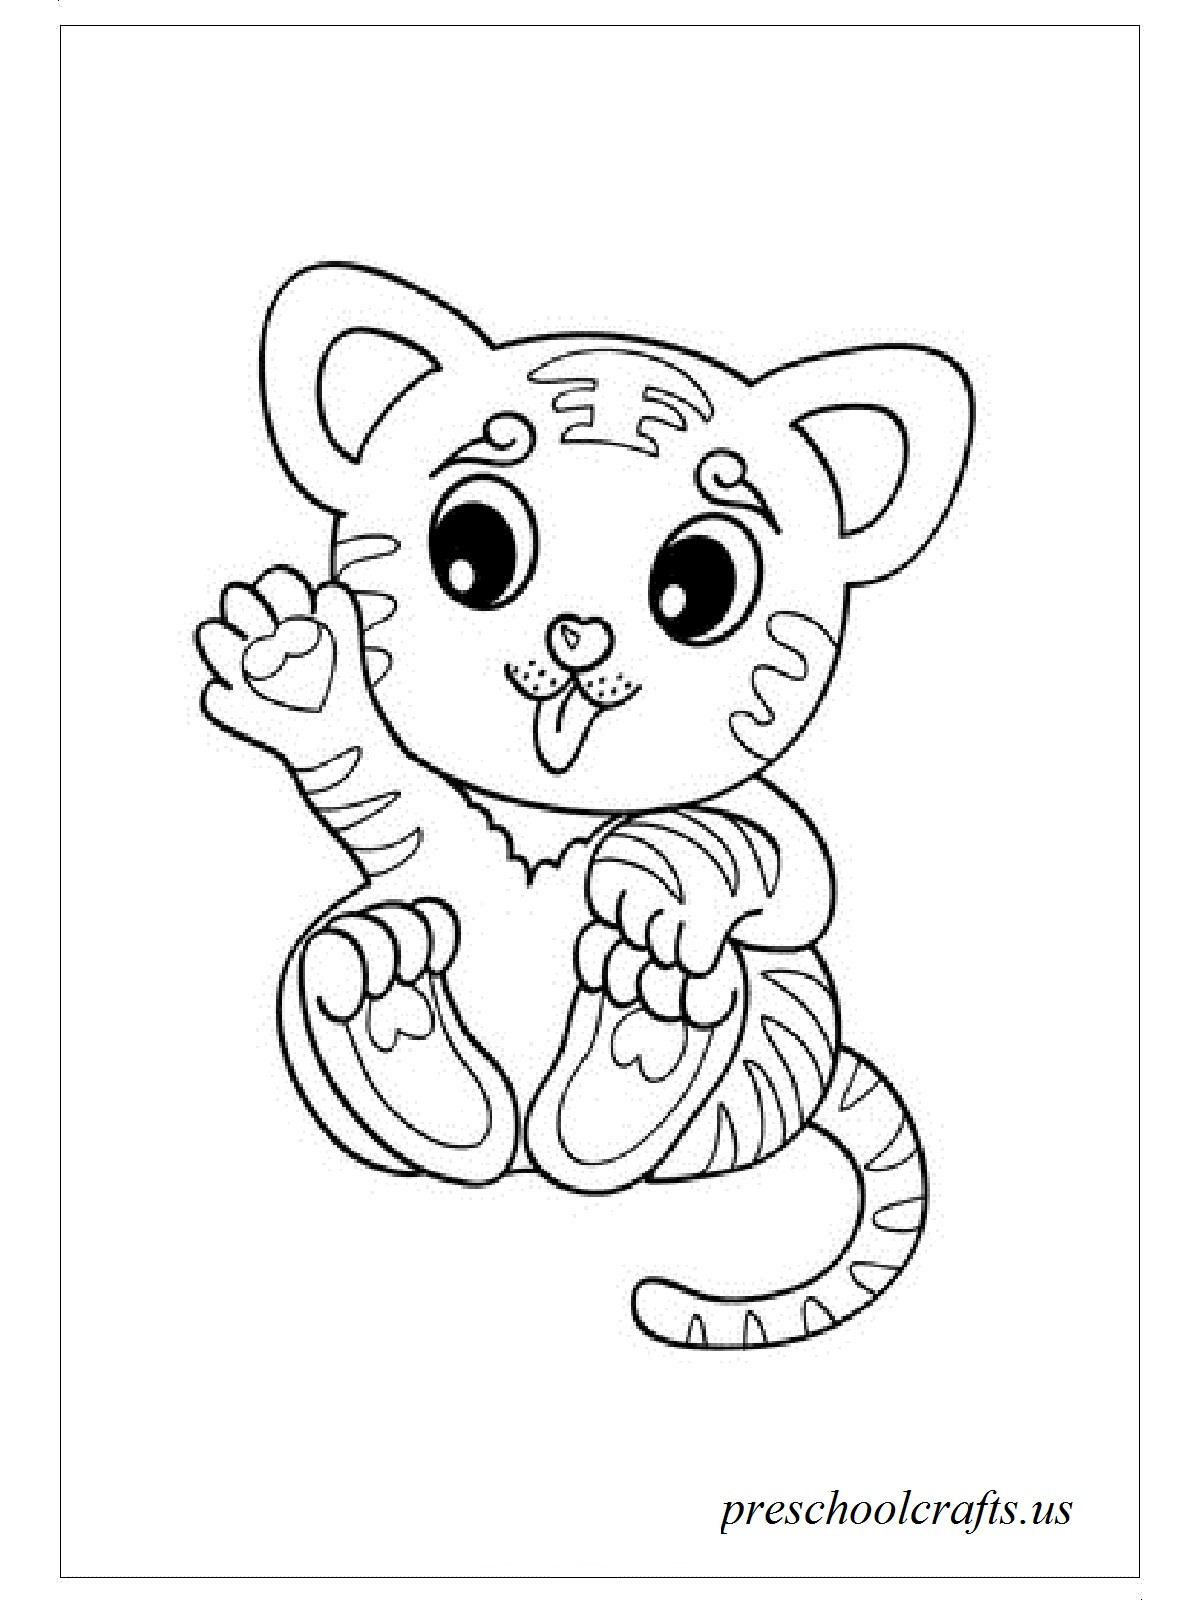 Cute Baby Tiger Coloring Pages  baby tiger coloring pages Preschool Crafts